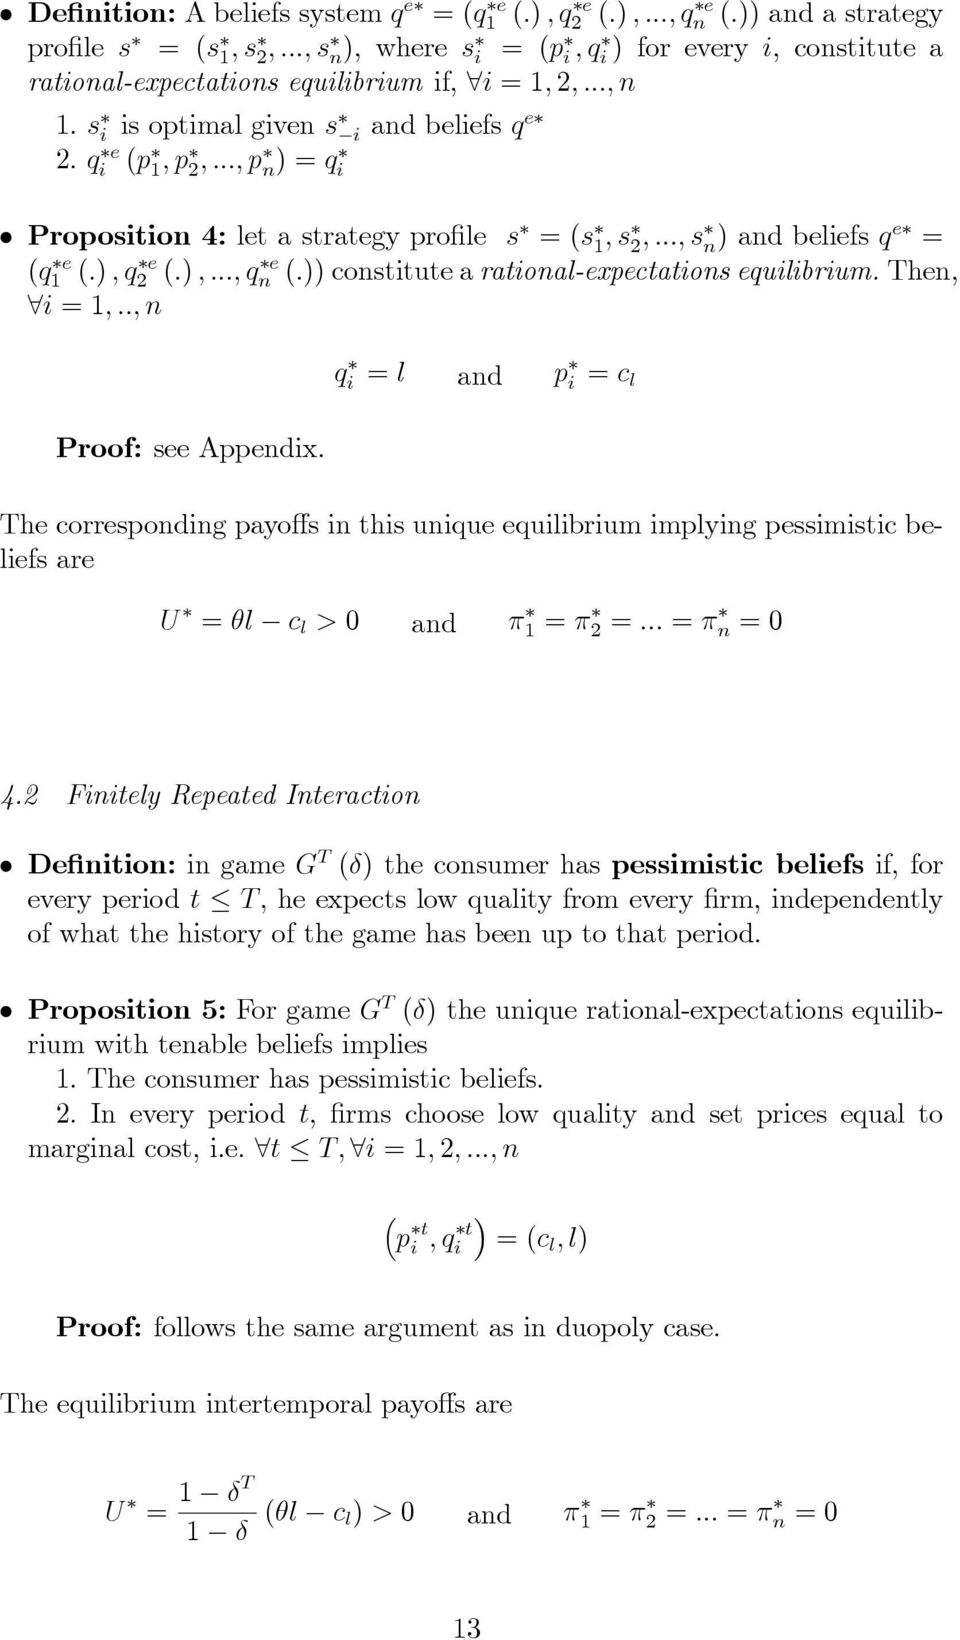 .., p n) = qi Proposition 4: let a strategy profile s = (s 1, s 2,..., s n) and beliefs q e = (q1 e (.), q2 e (.),..., qn e (.)) constitute a rational-expectations equilibrium. Then, i = 1,.